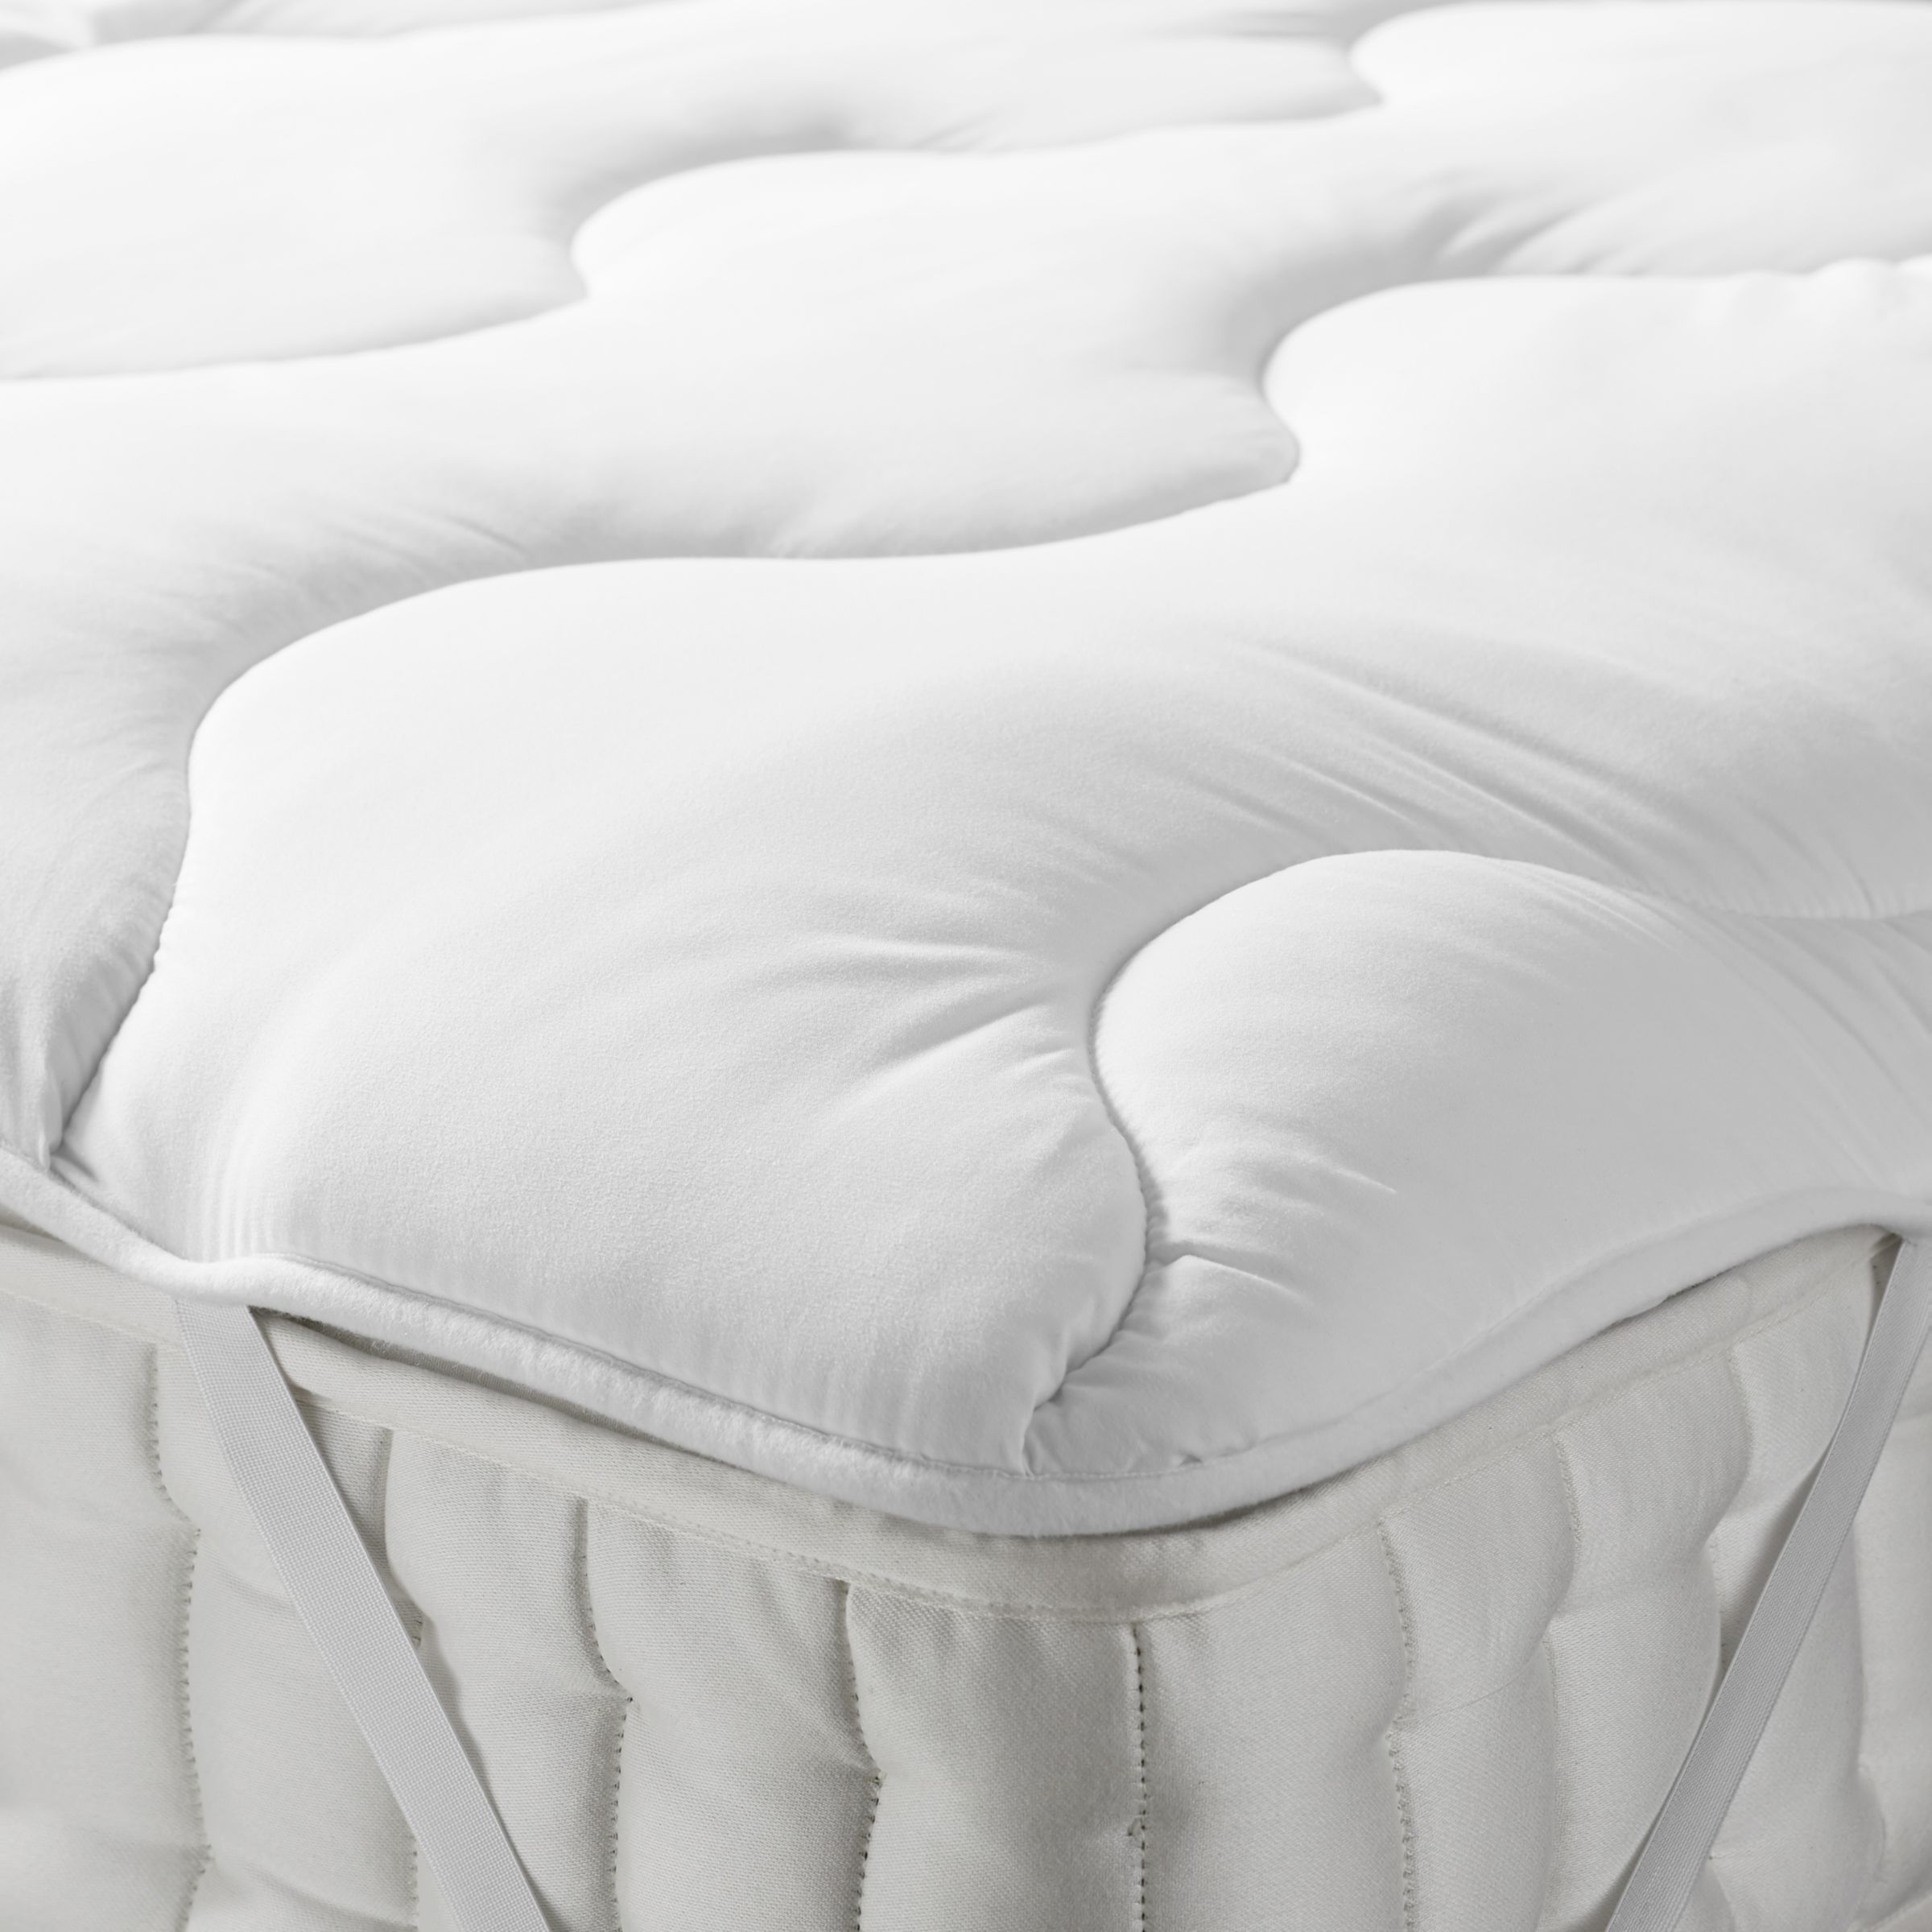 ANYDAY John Lewis & Partners Synthetic Soft and Light Mattress Topper